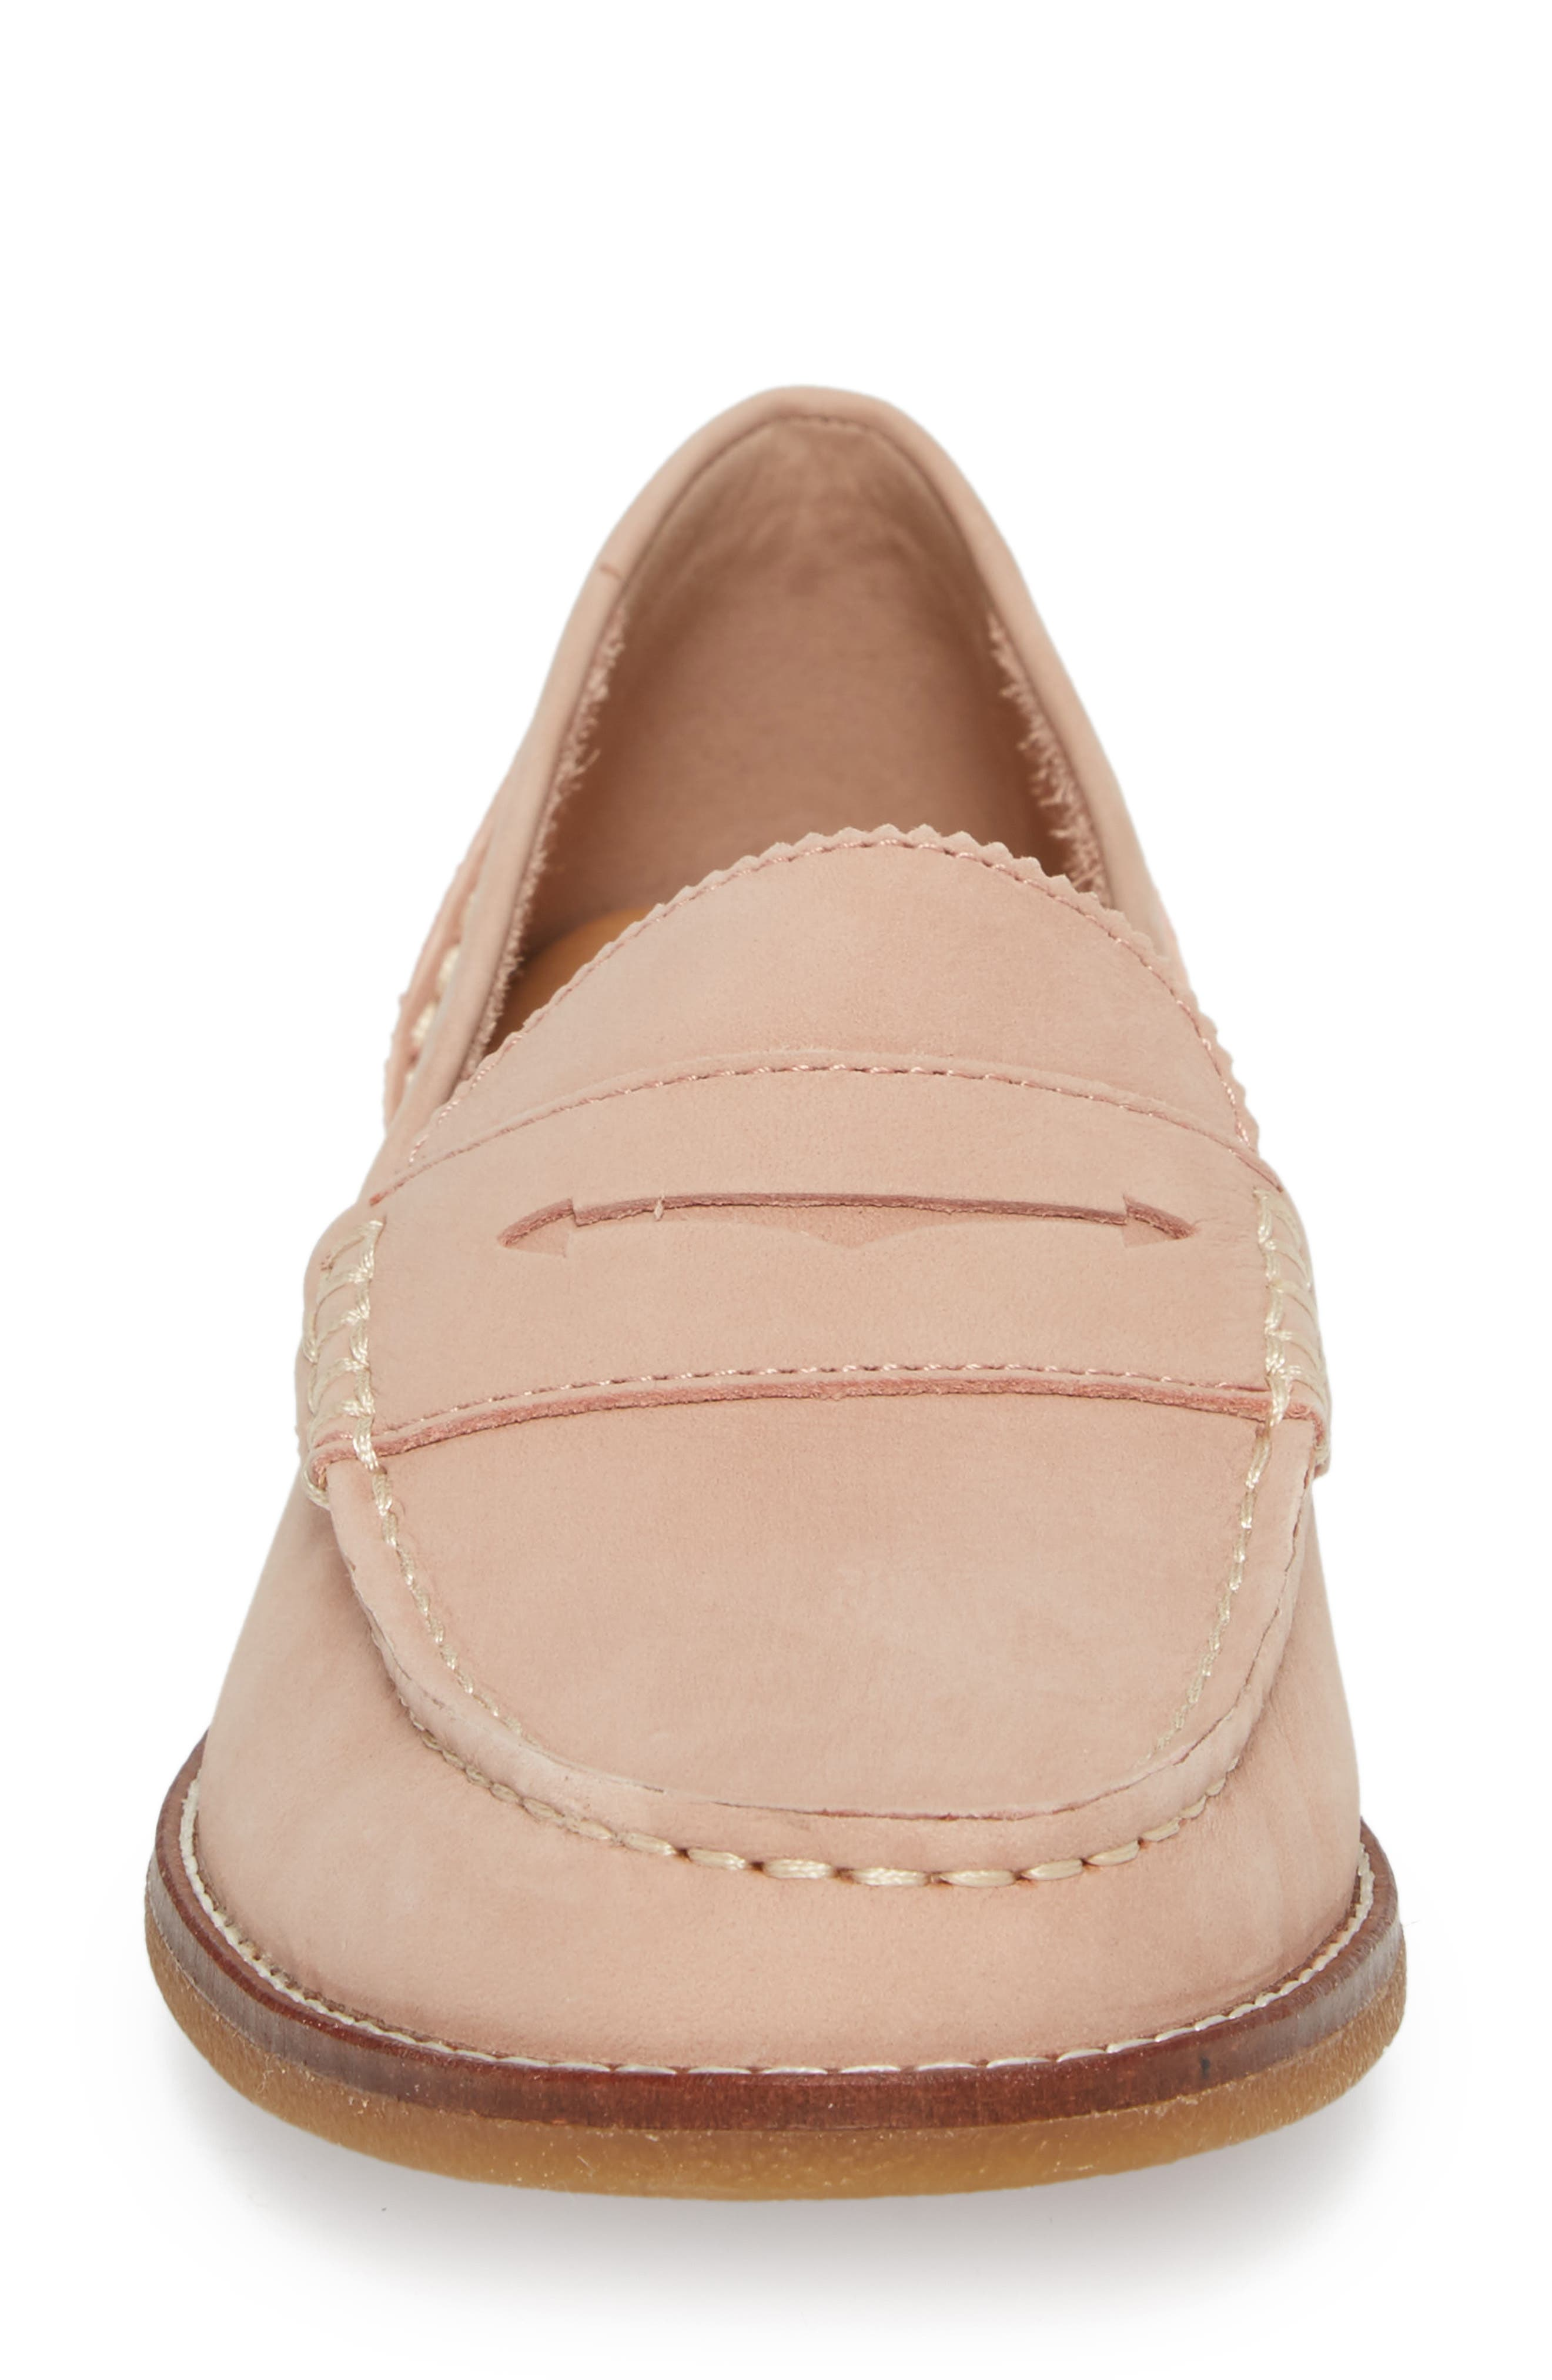 Seaport Penny Loafer,                             Alternate thumbnail 4, color,                             ROSE DUST LEATHER